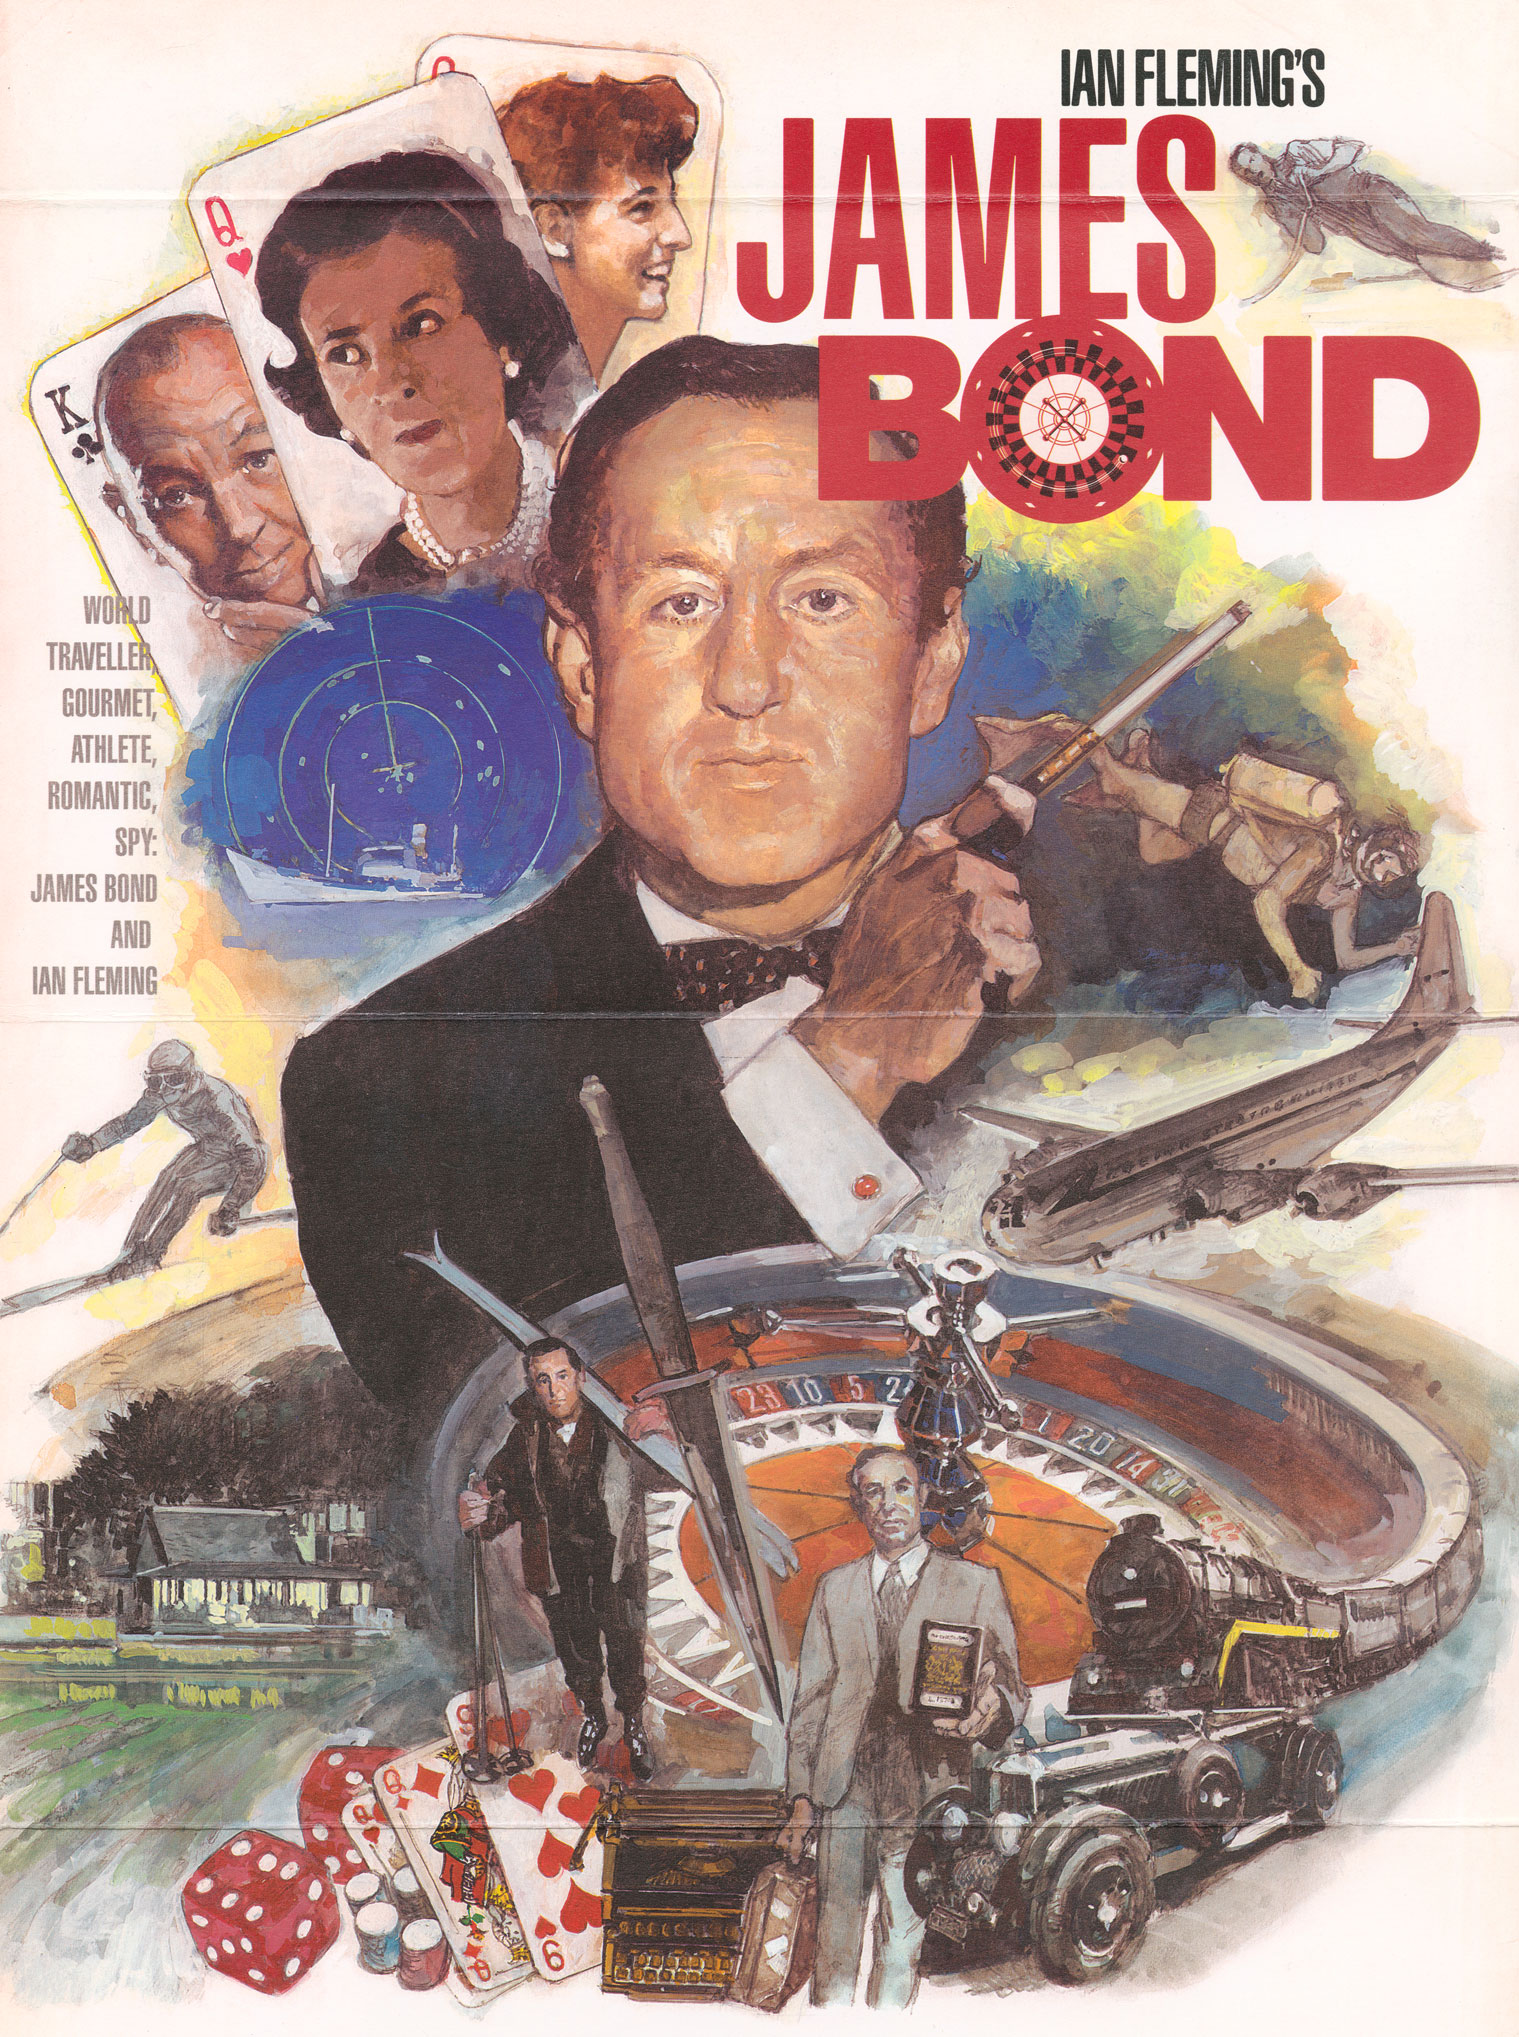 Illustrated image of Ian Fleming with playing cards, vehicles and a train.